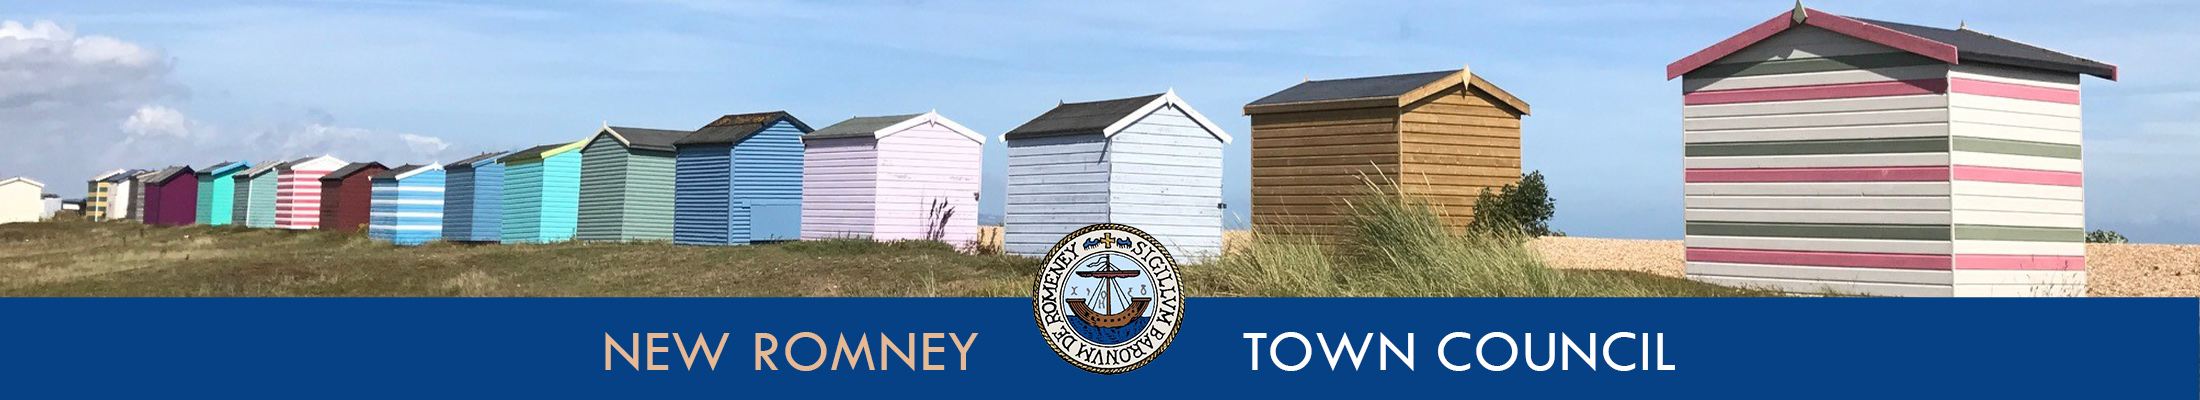 Header Image for New Romney Town Council